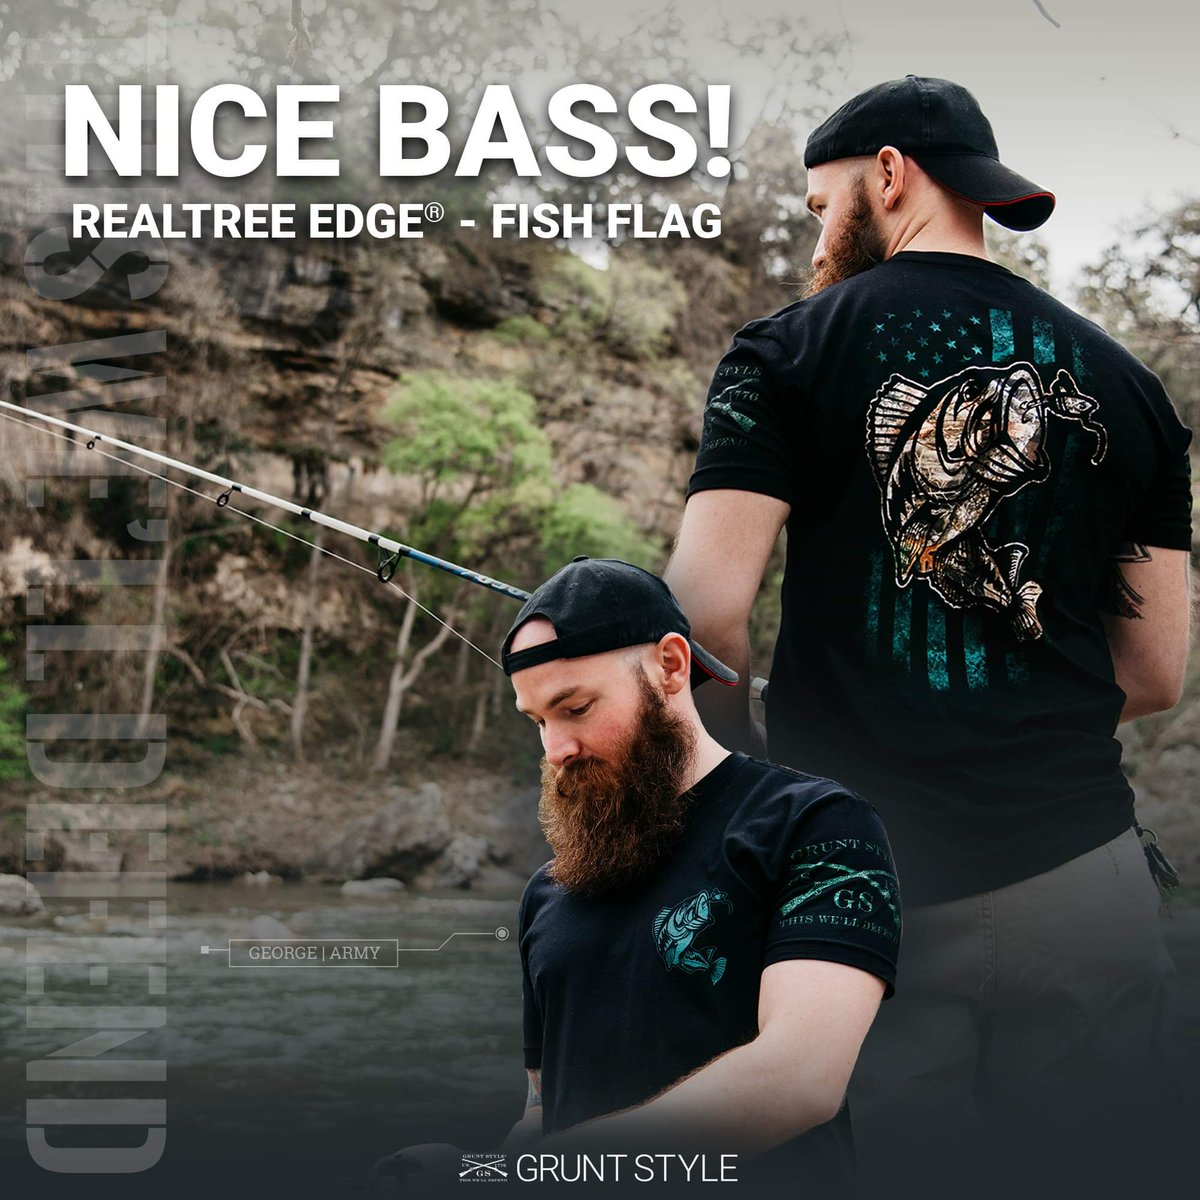 4685dab0 All new Realtree Outdoors® by Grunt Style is here! Gear up here! http://www. gruntstyle.com/pages/realtree #gruntstyle #thiswelldefend #clubgruntstyle  ...